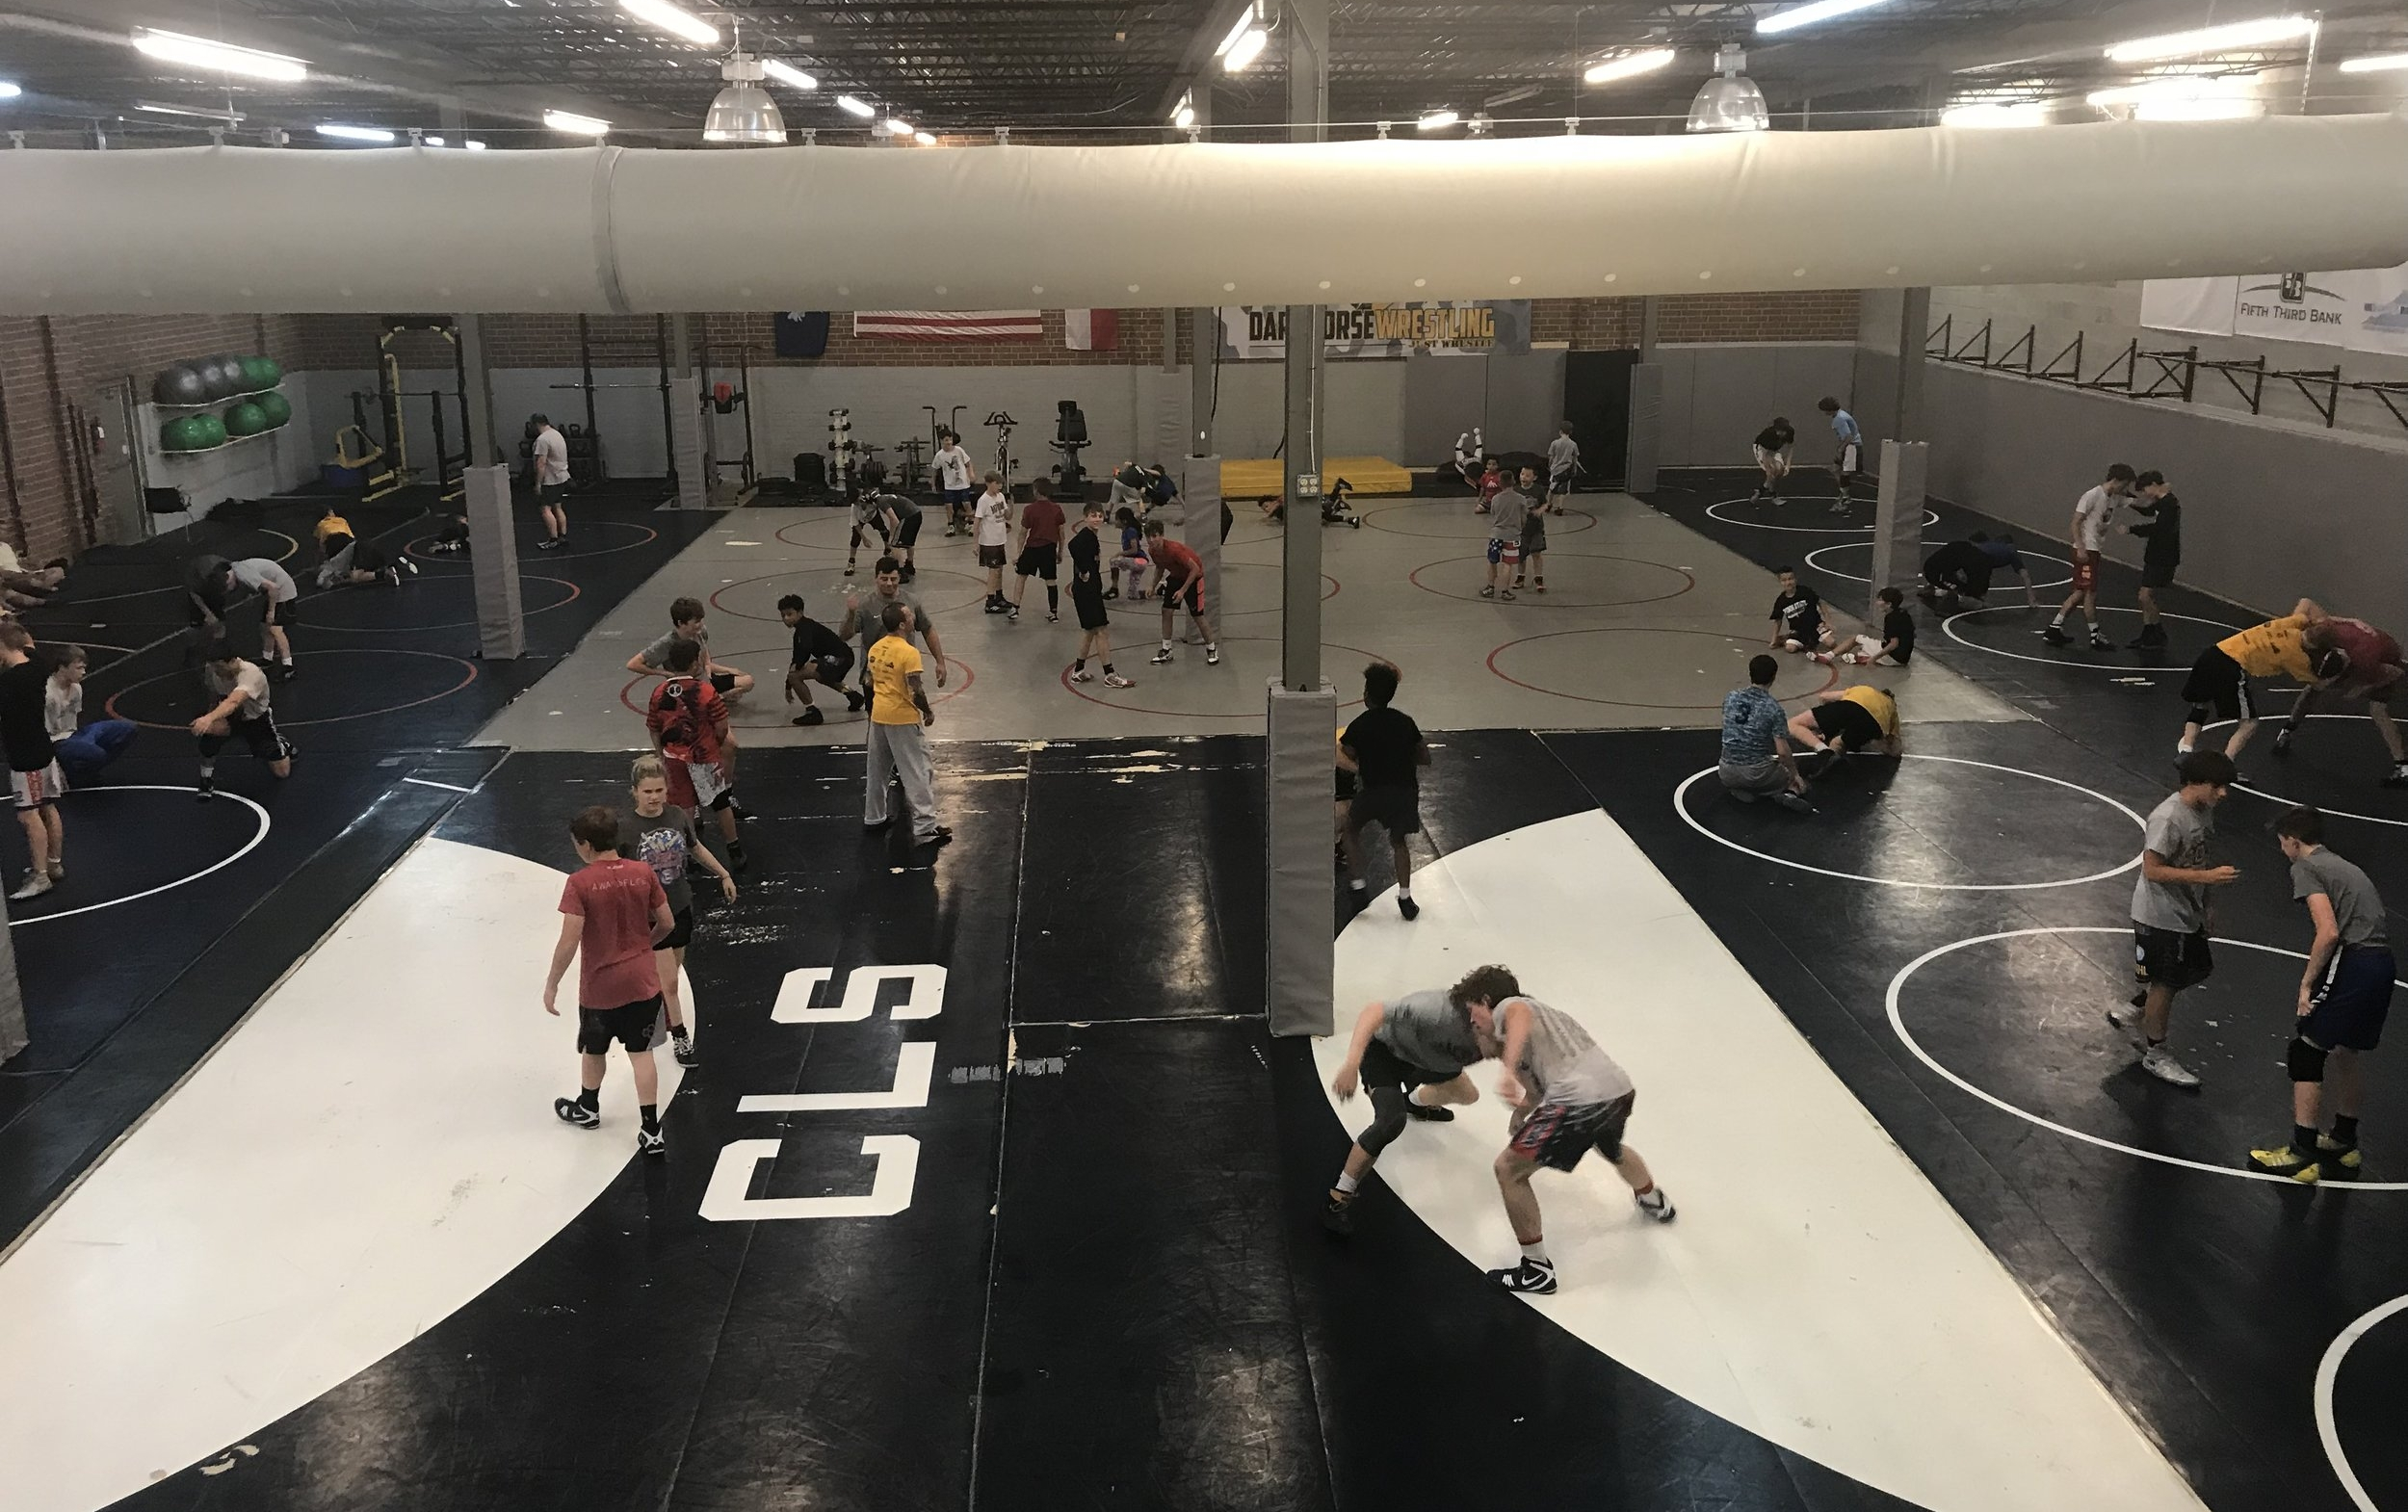 With just over 70 wrestlers in attendance - the Darkhorse summer camp featuring 2 x NCAA National Champion VINCENZO JOSEPH was a great way to augment your summer training!! See our CAMPS page for more information about all our summer training opportunities.